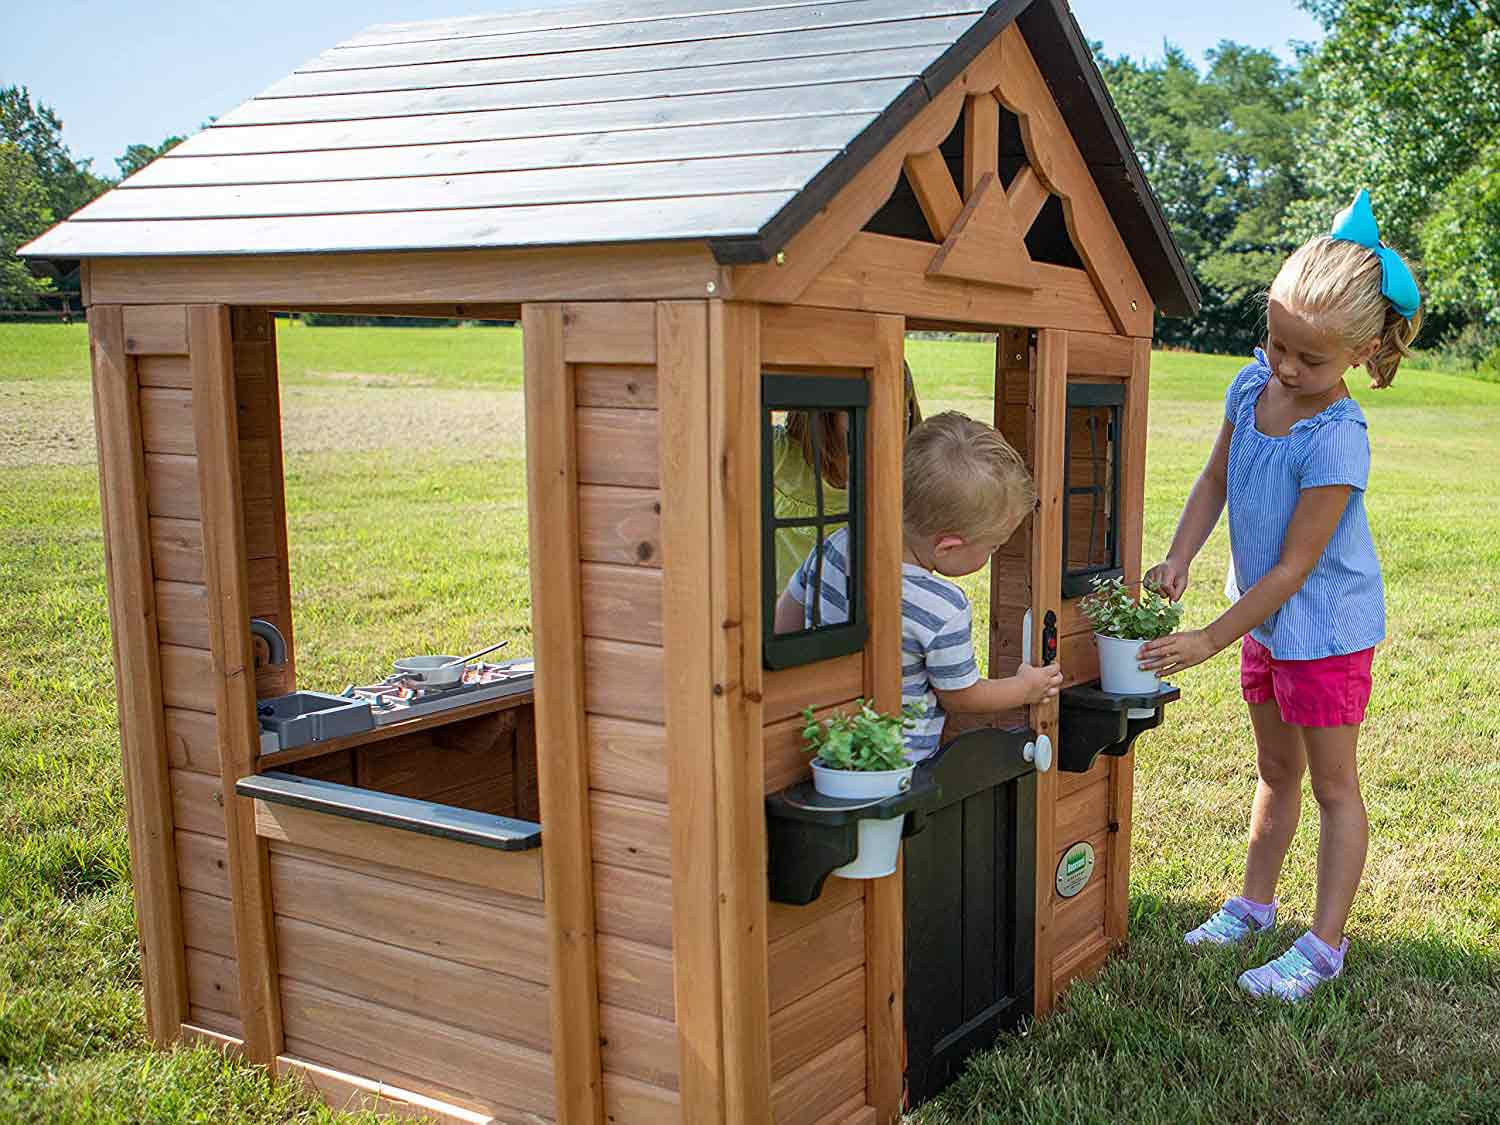 Kids playing in backyard playhouse